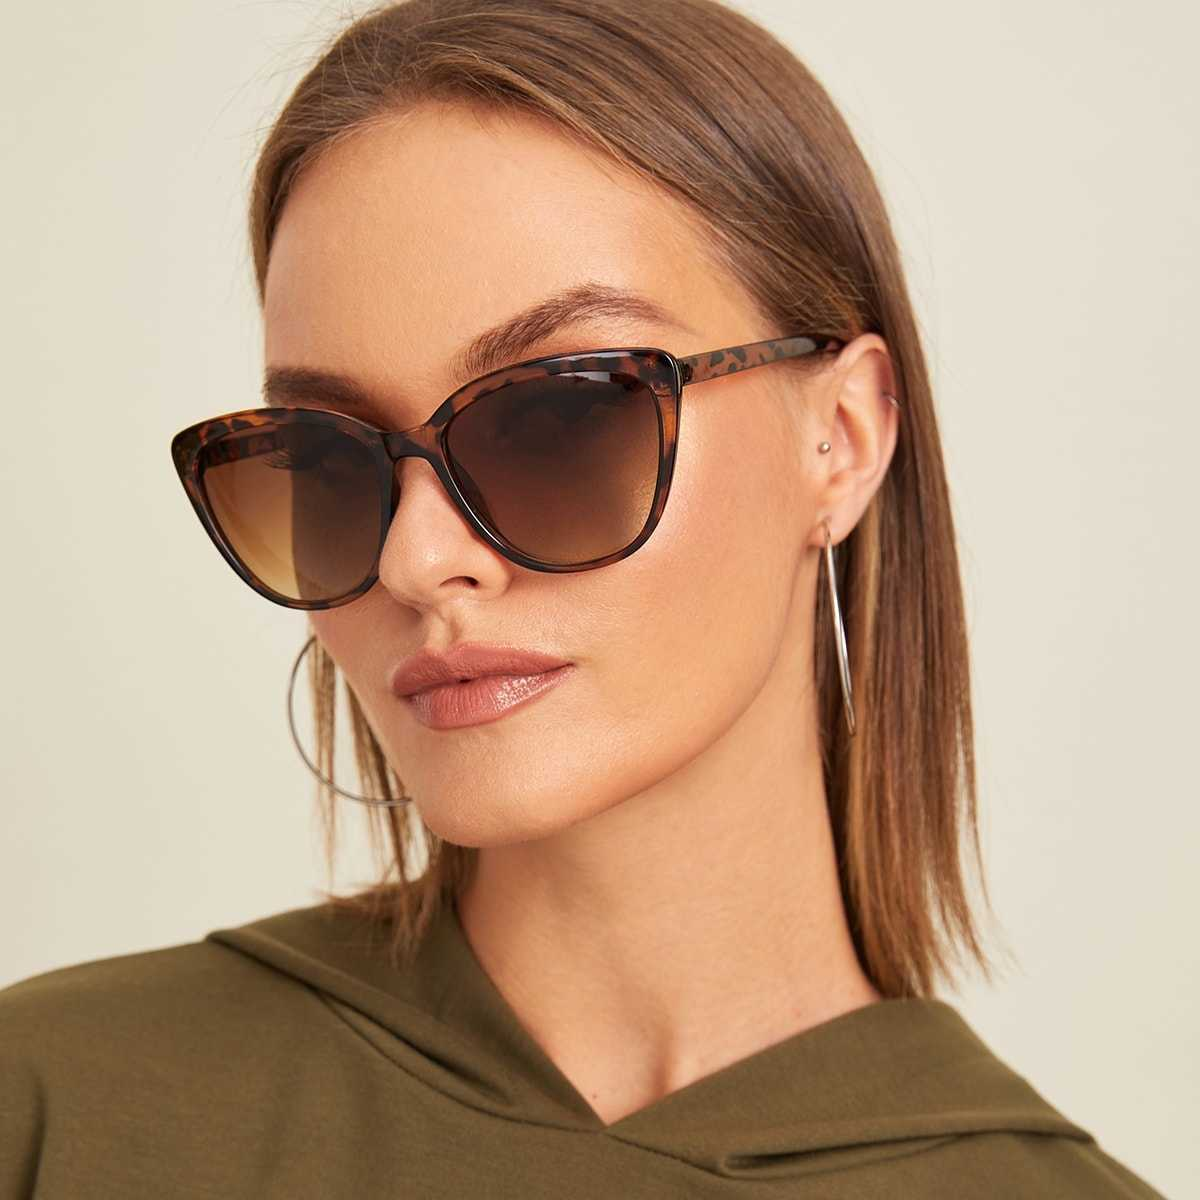 Tortoiseshell Frame Flat Lens Sunglasses With Case in Multicolor by ROMWE on GOOFASH